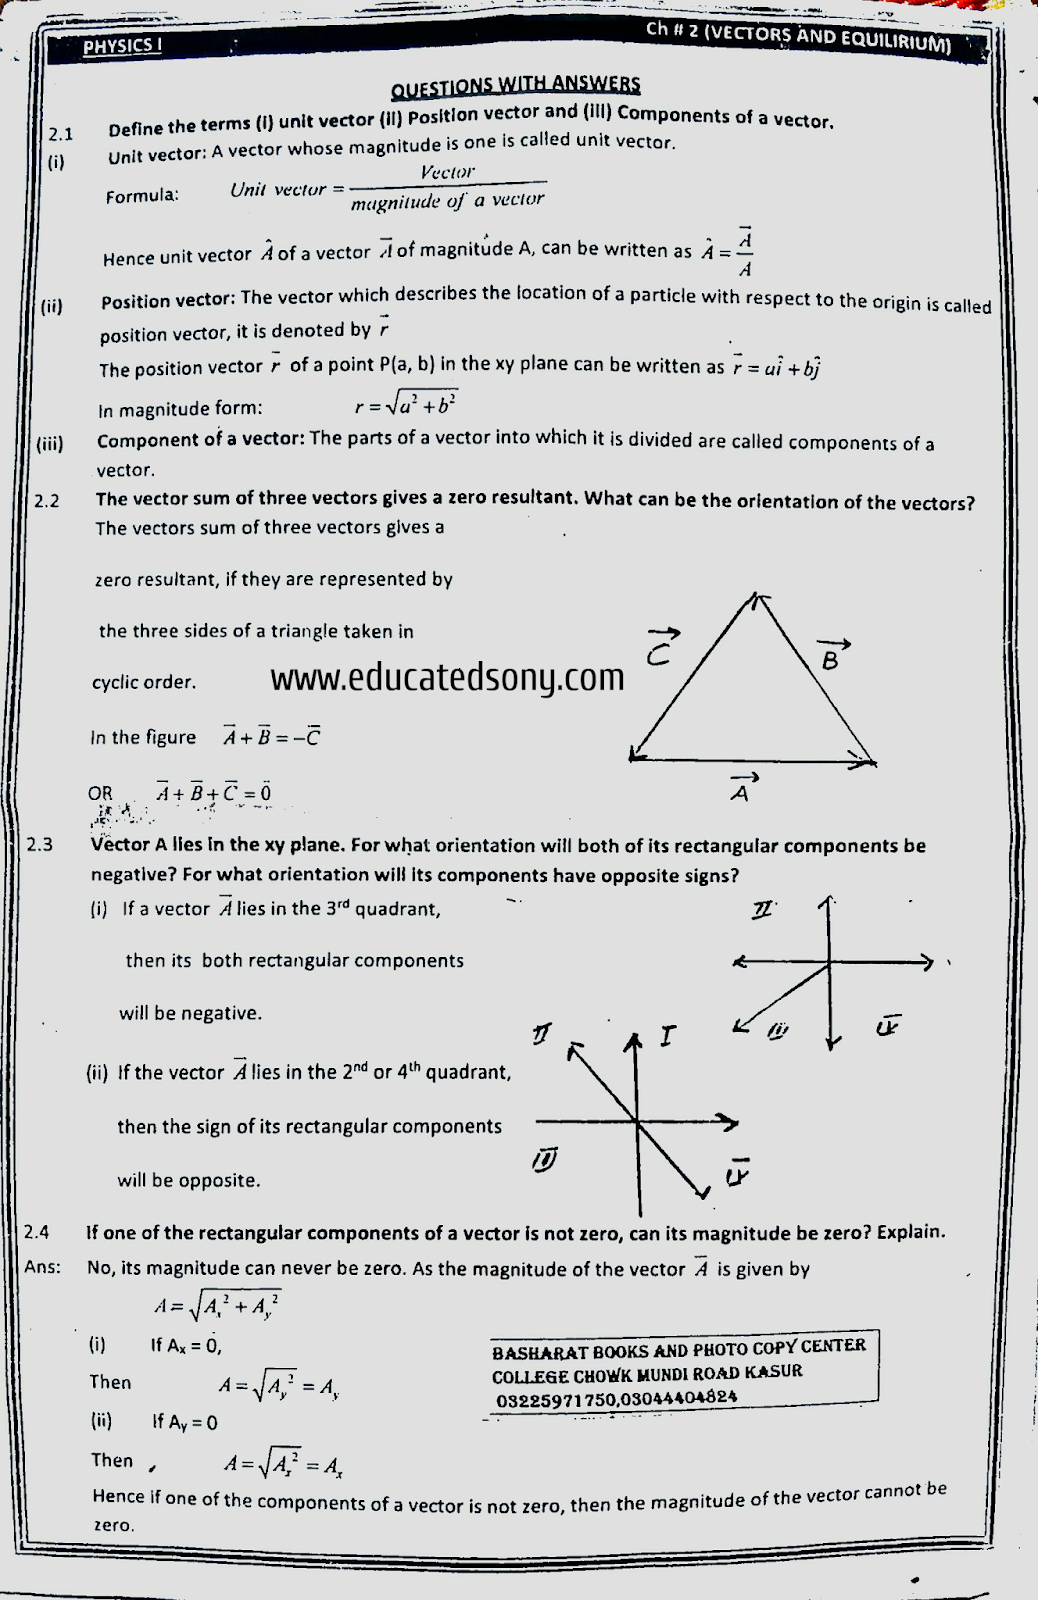 CHAPTER 2 SHORT QUESTIONS-VECTOR AND EQUILIBRIUM,1ST YEAR